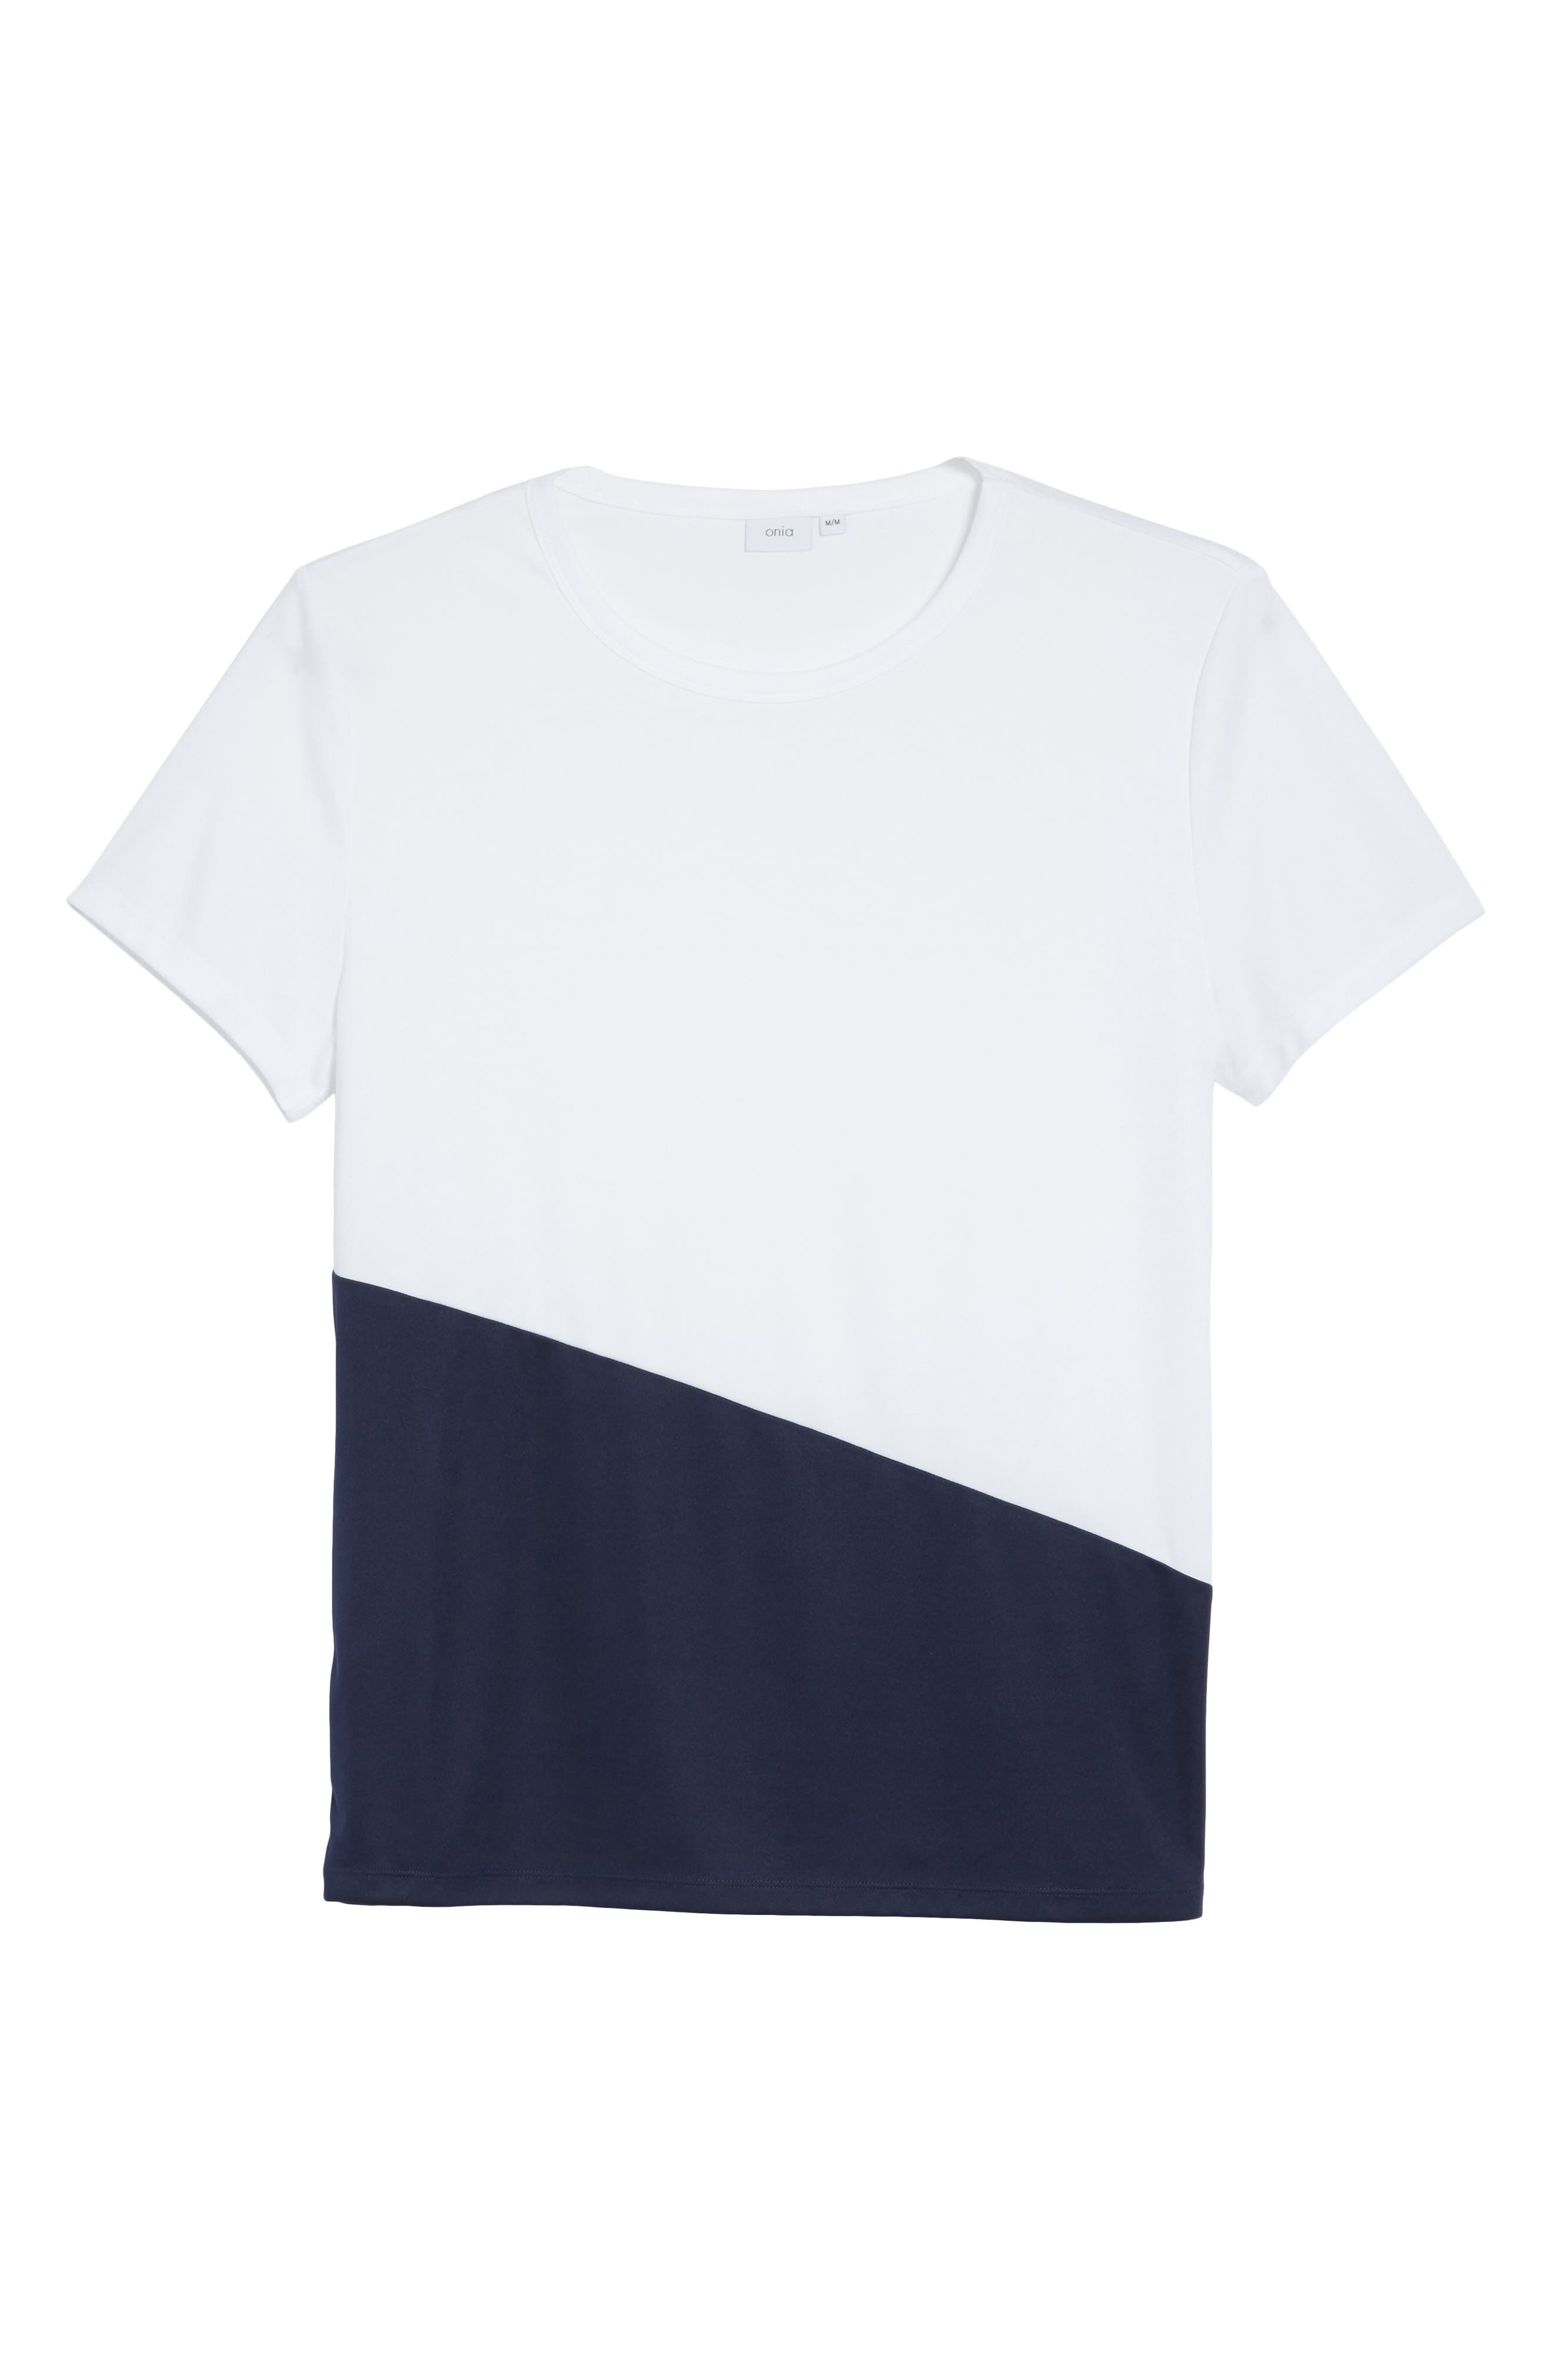 Colorblock Crewneck T-Shirt,                             Alternate thumbnail 6, color,                             DEEP NAVY/ WHITE